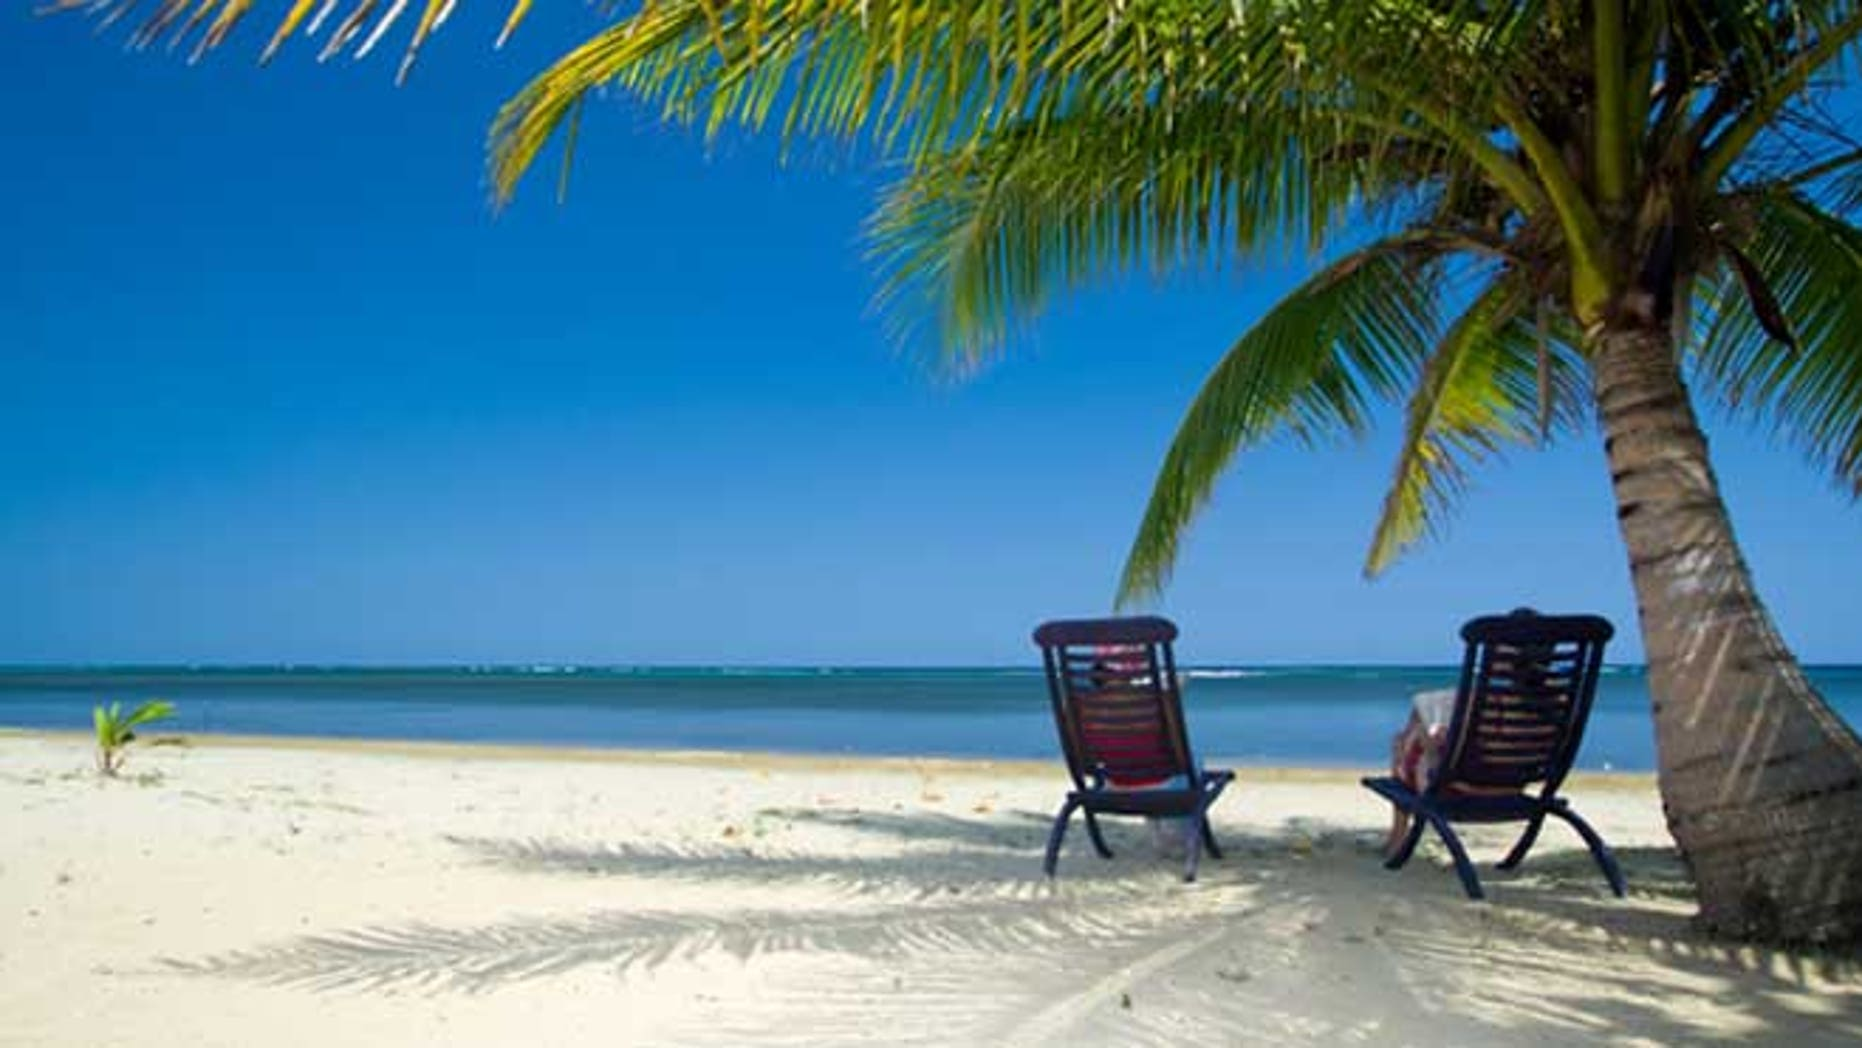 Relaxing under a palm tree on remote beach